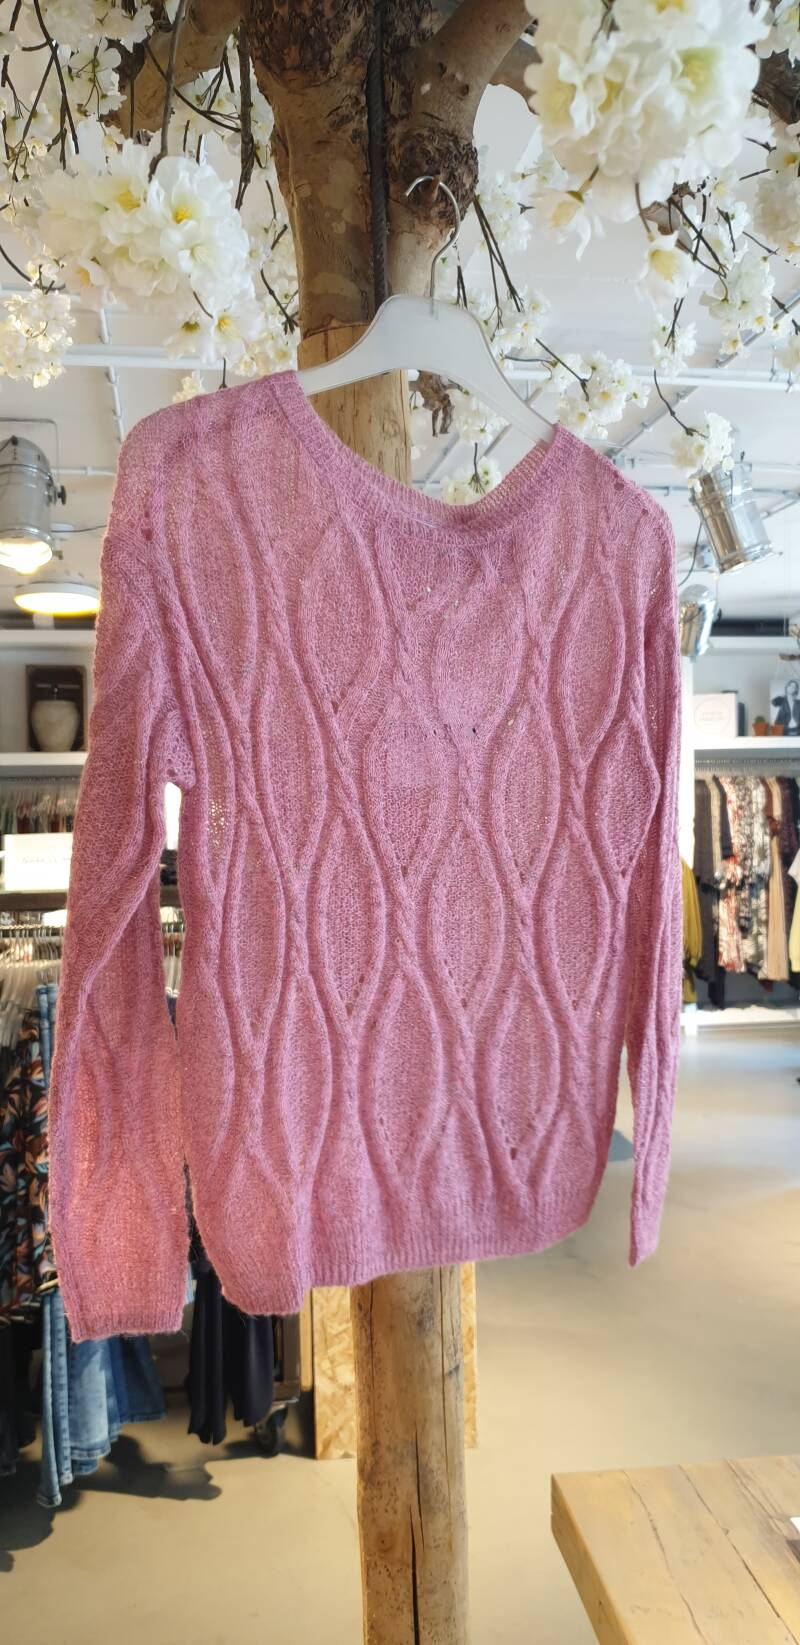 OUTL.Desires Angela pullover